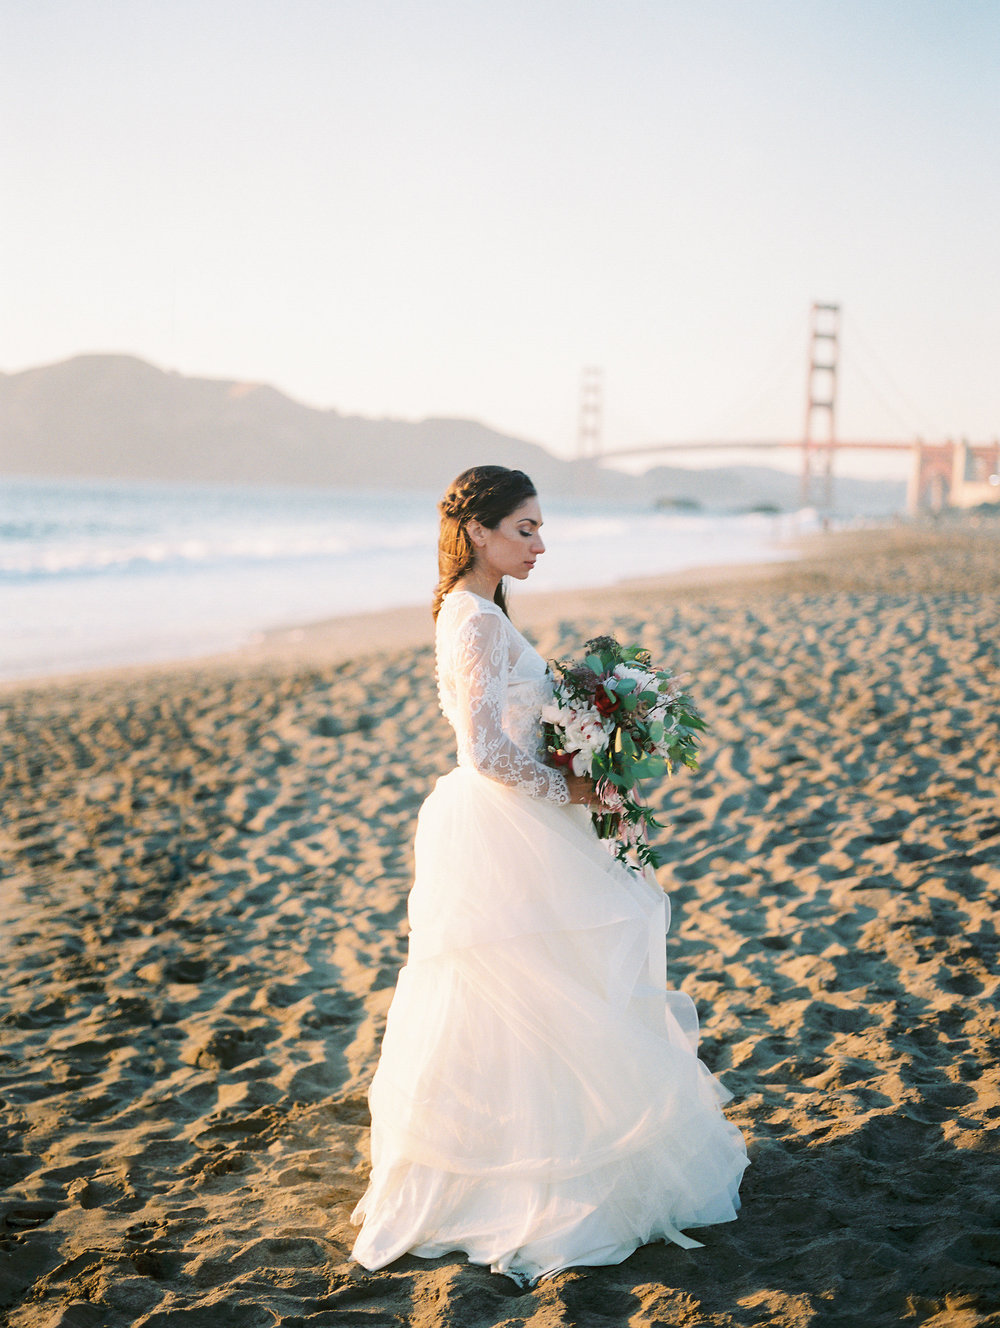 San Francisco film photographer, film photographer, destination weddings, elopement photography